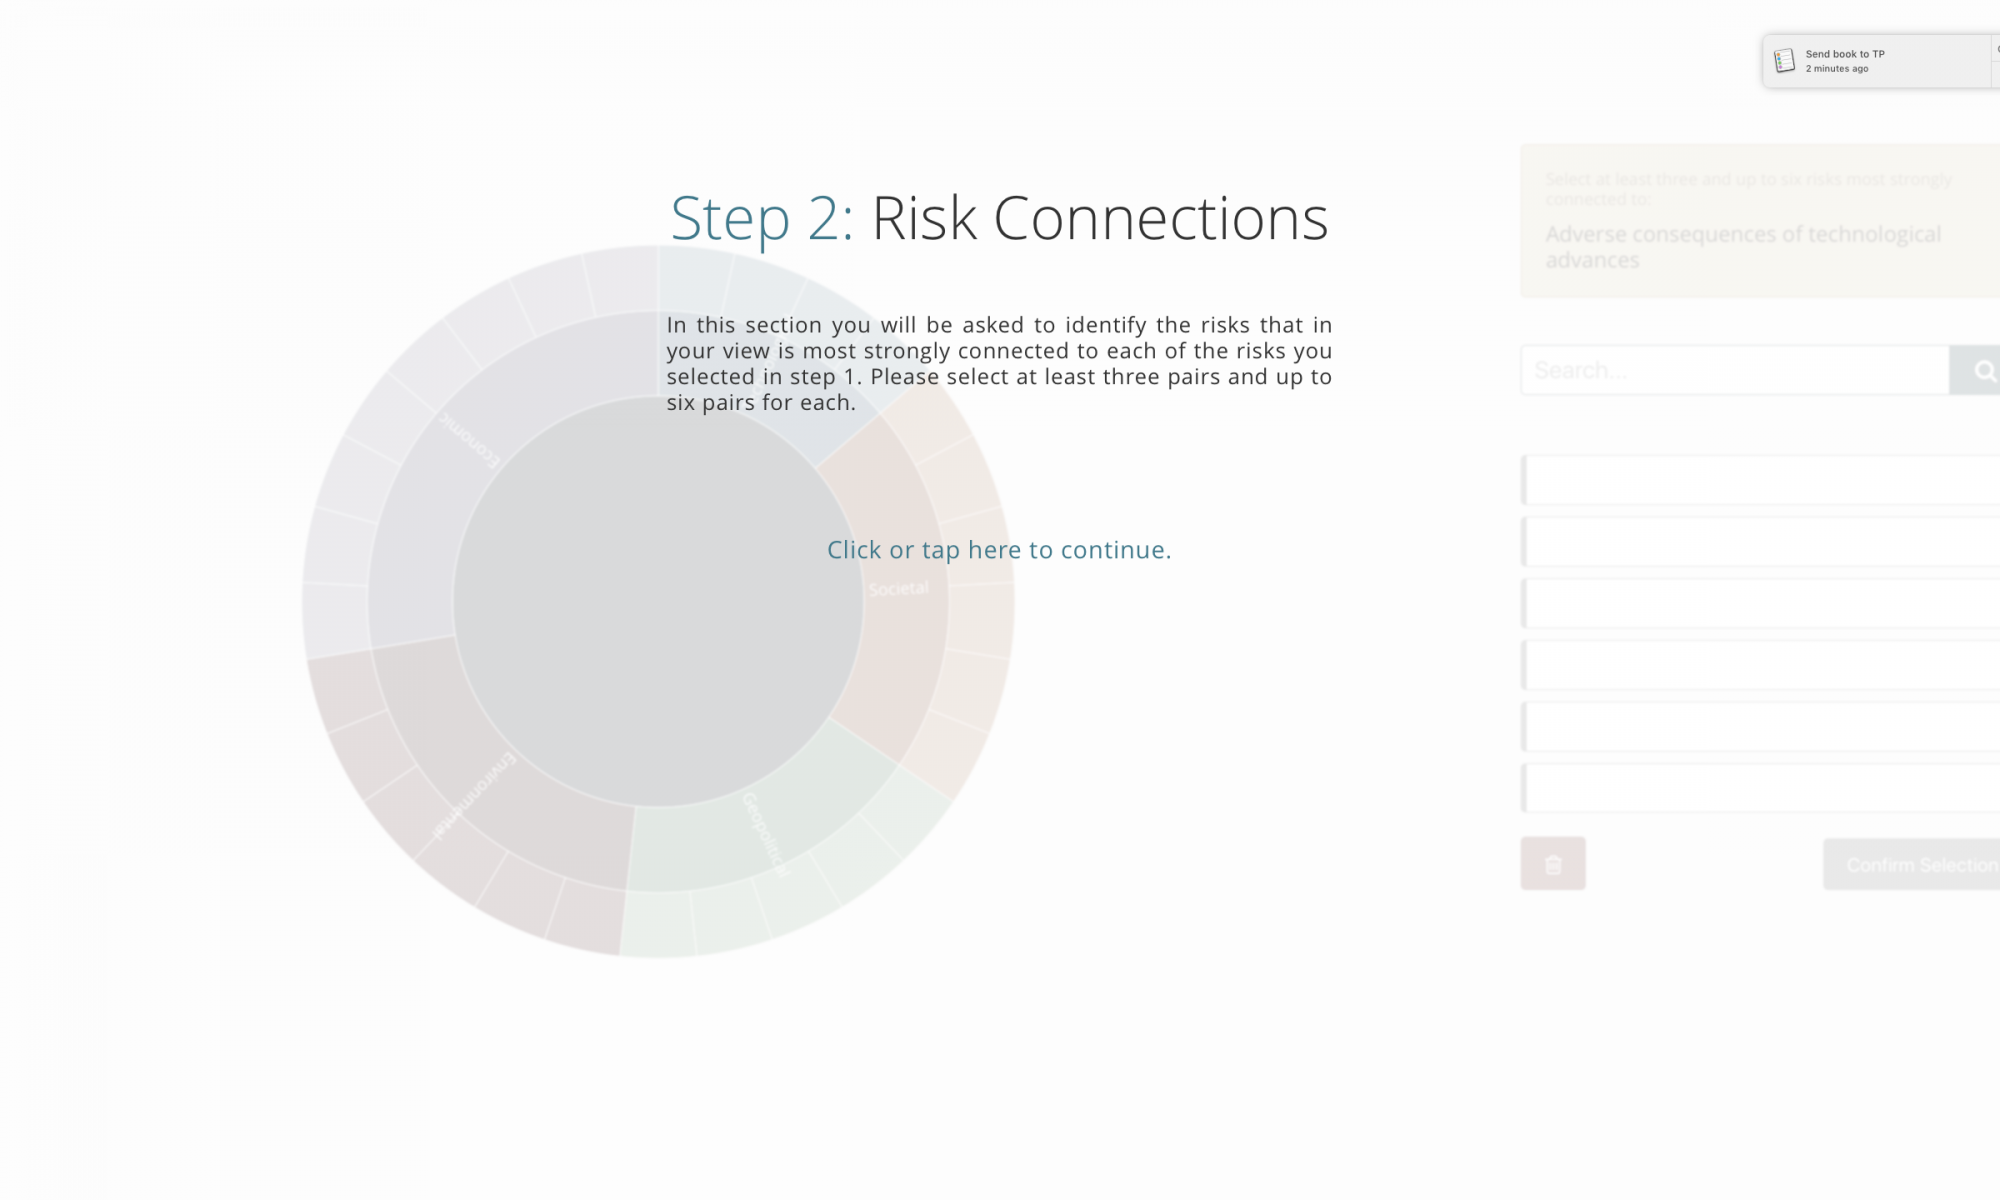 Step 2 - Risk Connections